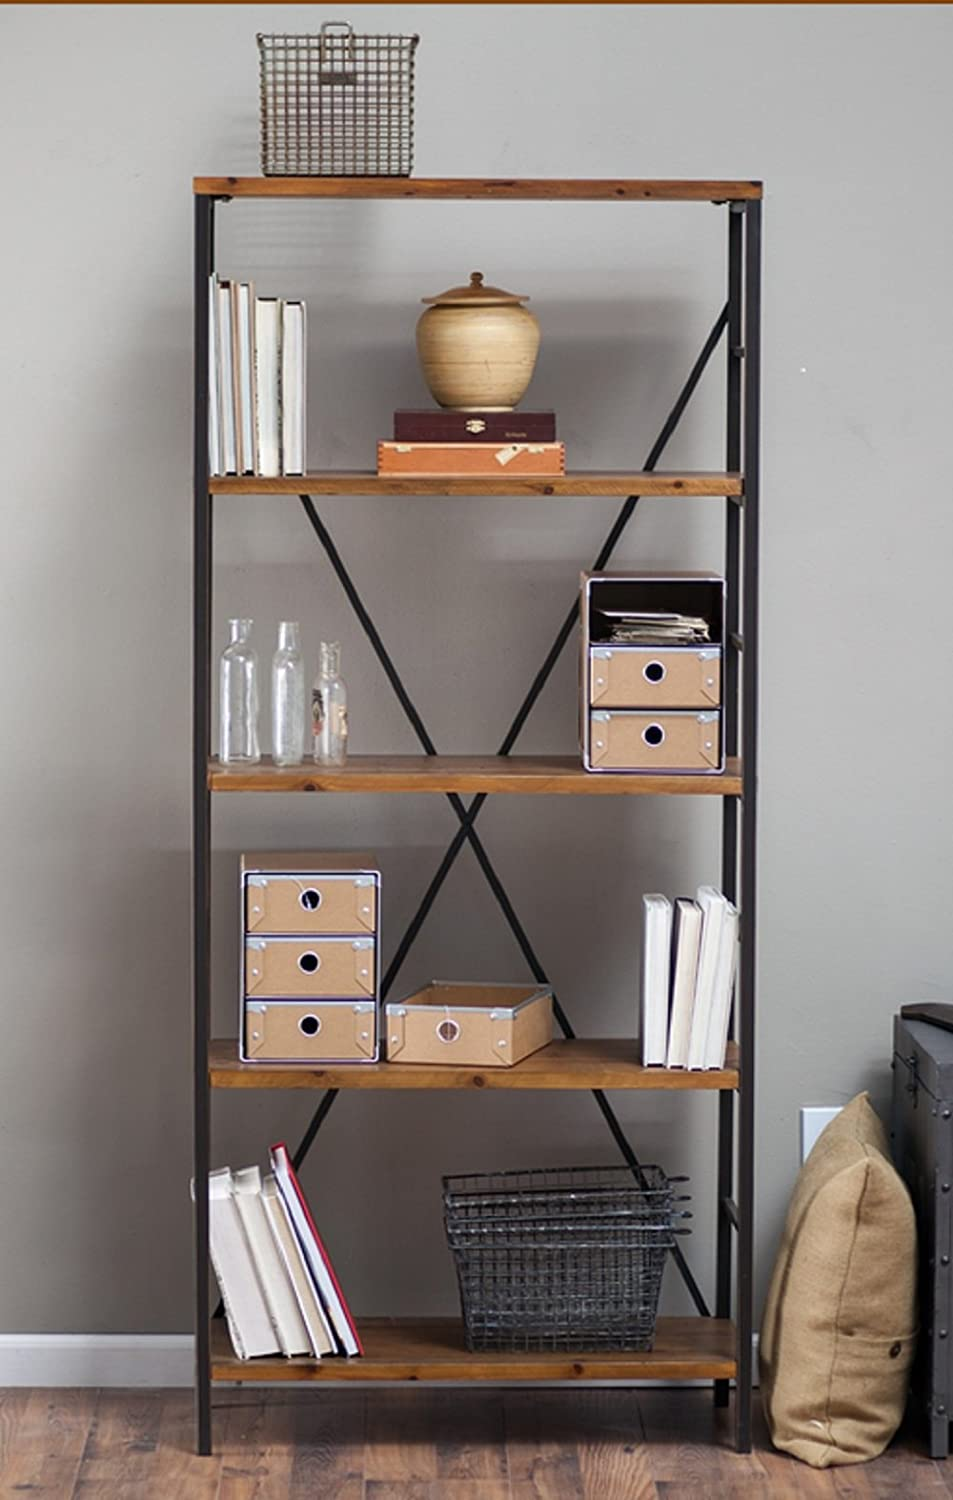 Rustic Wood Bookcase With Adjustable Shelves Featuring An Industrial,  Factory Look - 100% Satisfaction Guarantee